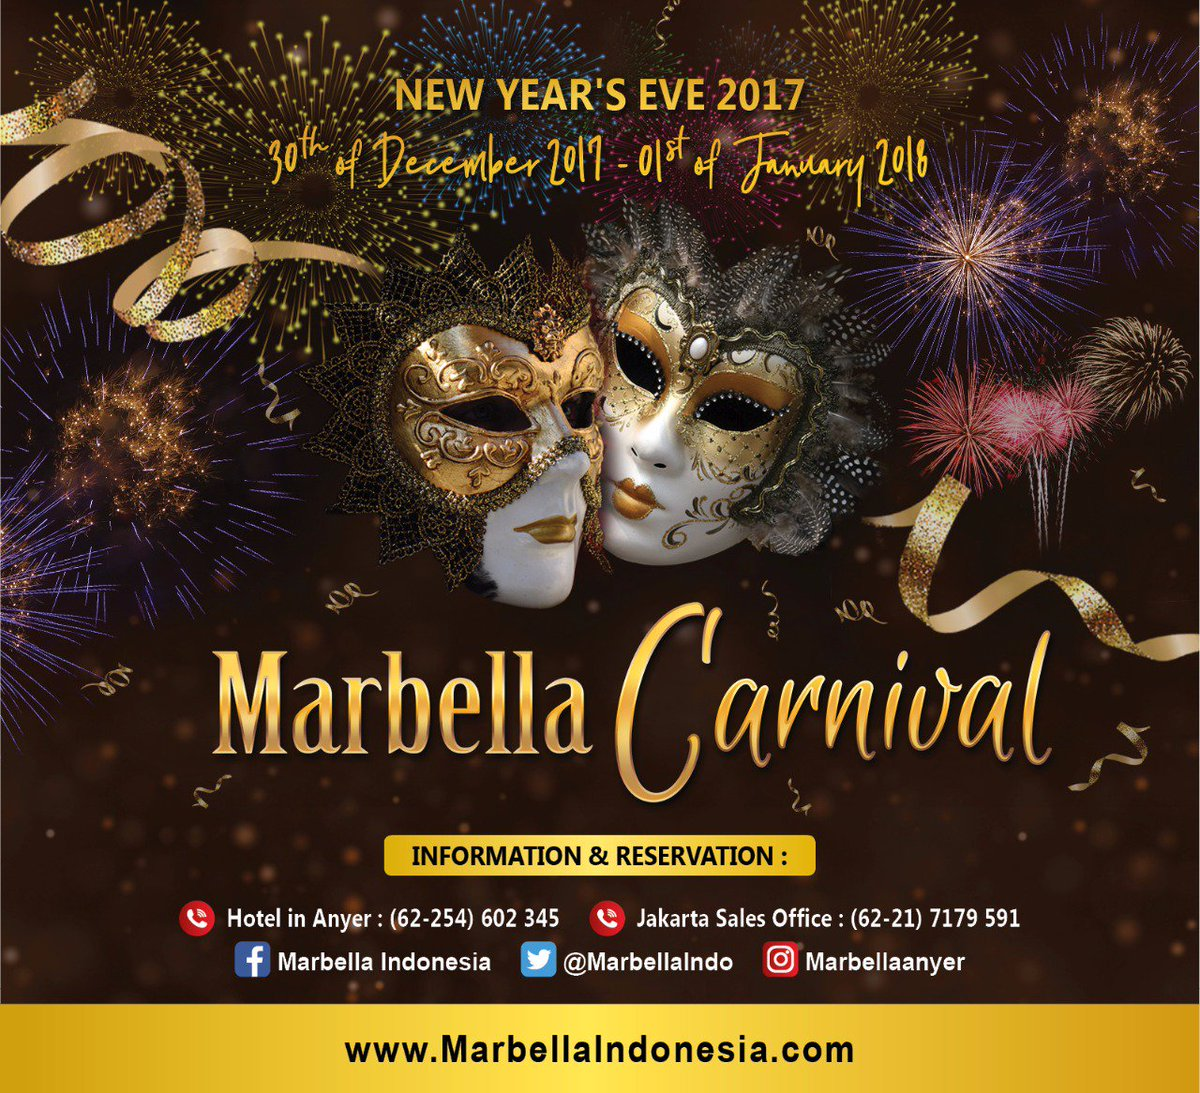 Marbella Indonesia Marbellaindo Twitter Voucher Hotel Convention And Spa Anyer Dont Miss The Carnival A Garden Pool Extravaganza New Years Eve Party Put Your Best Costume Join Crowds